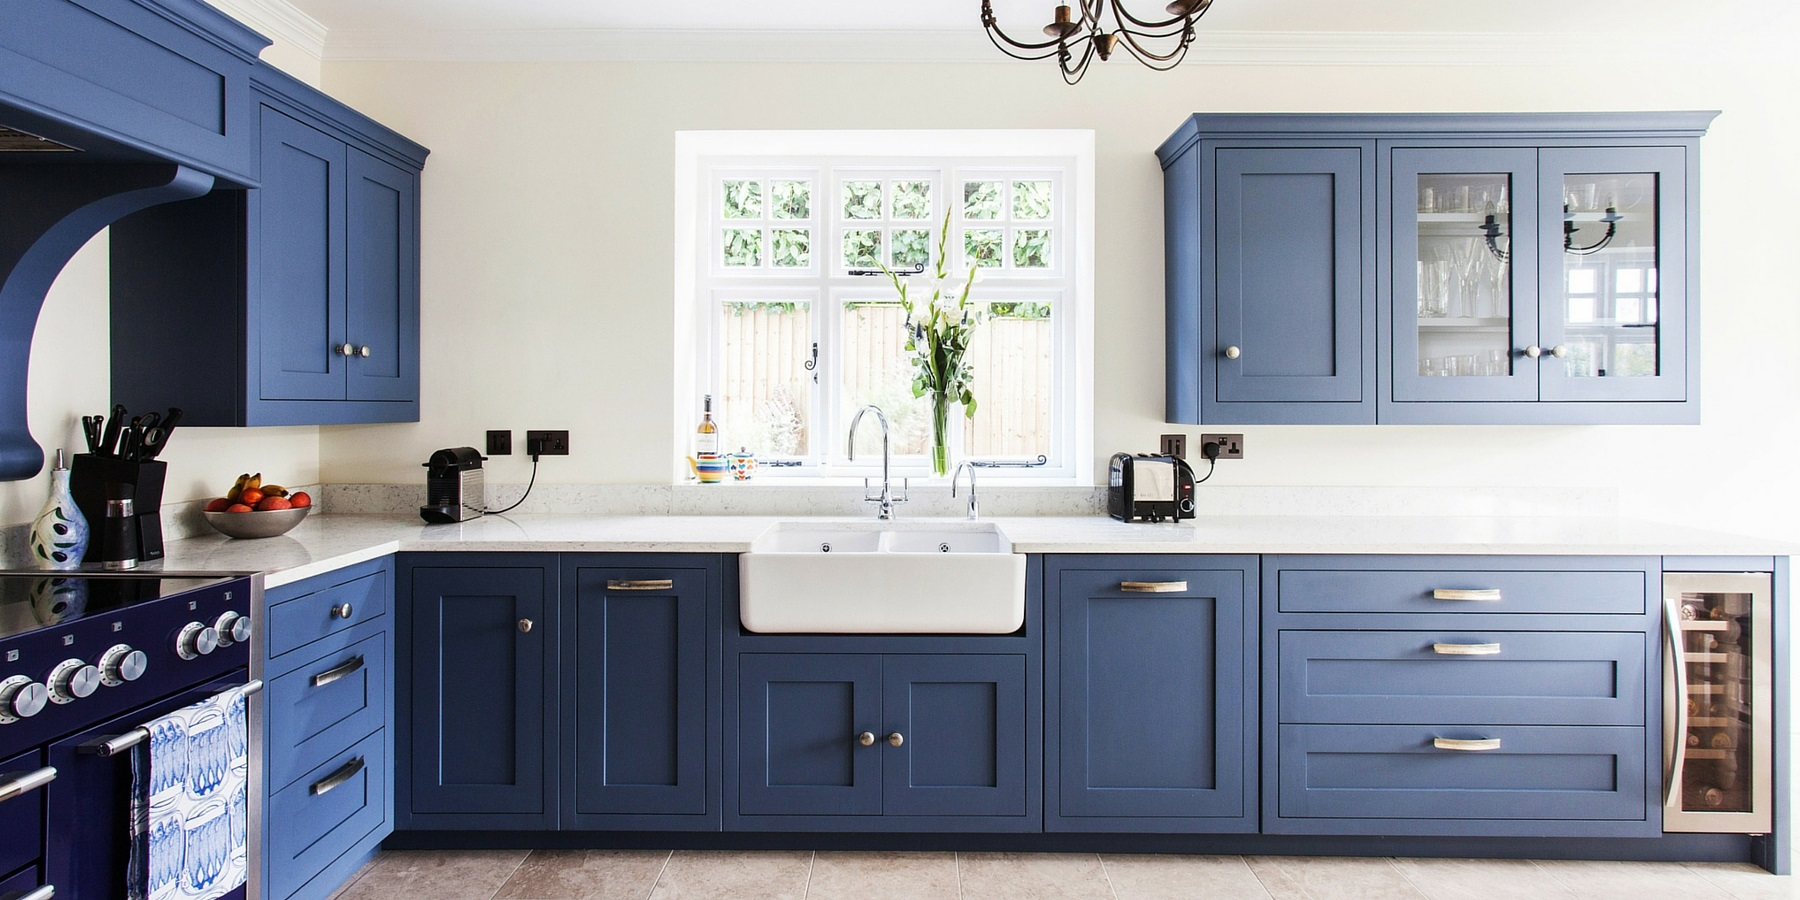 Home Design Ideas Pictures: Kitchen Storage Solutions And Kitchen Must-haves For A